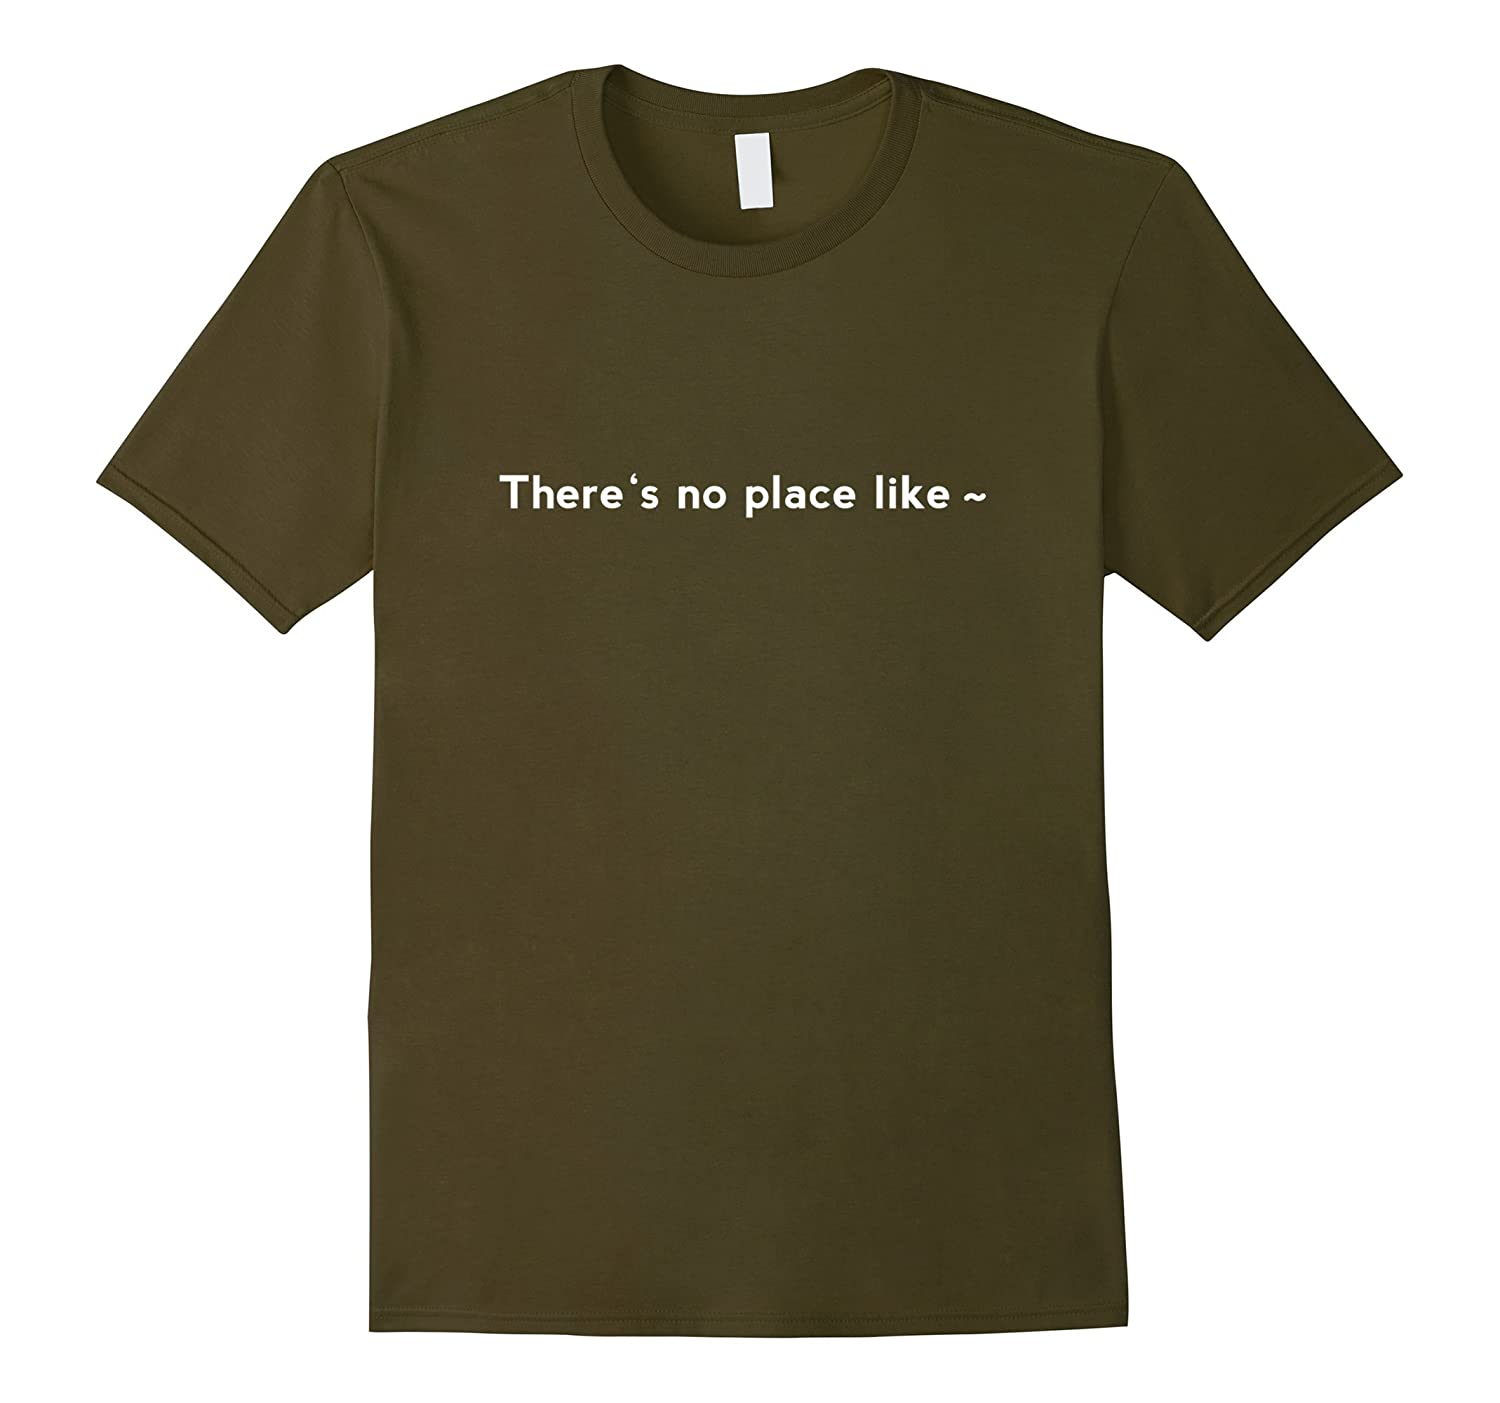 There's no place like home Linux (Unix) T-shirt programmer-T-Shirt